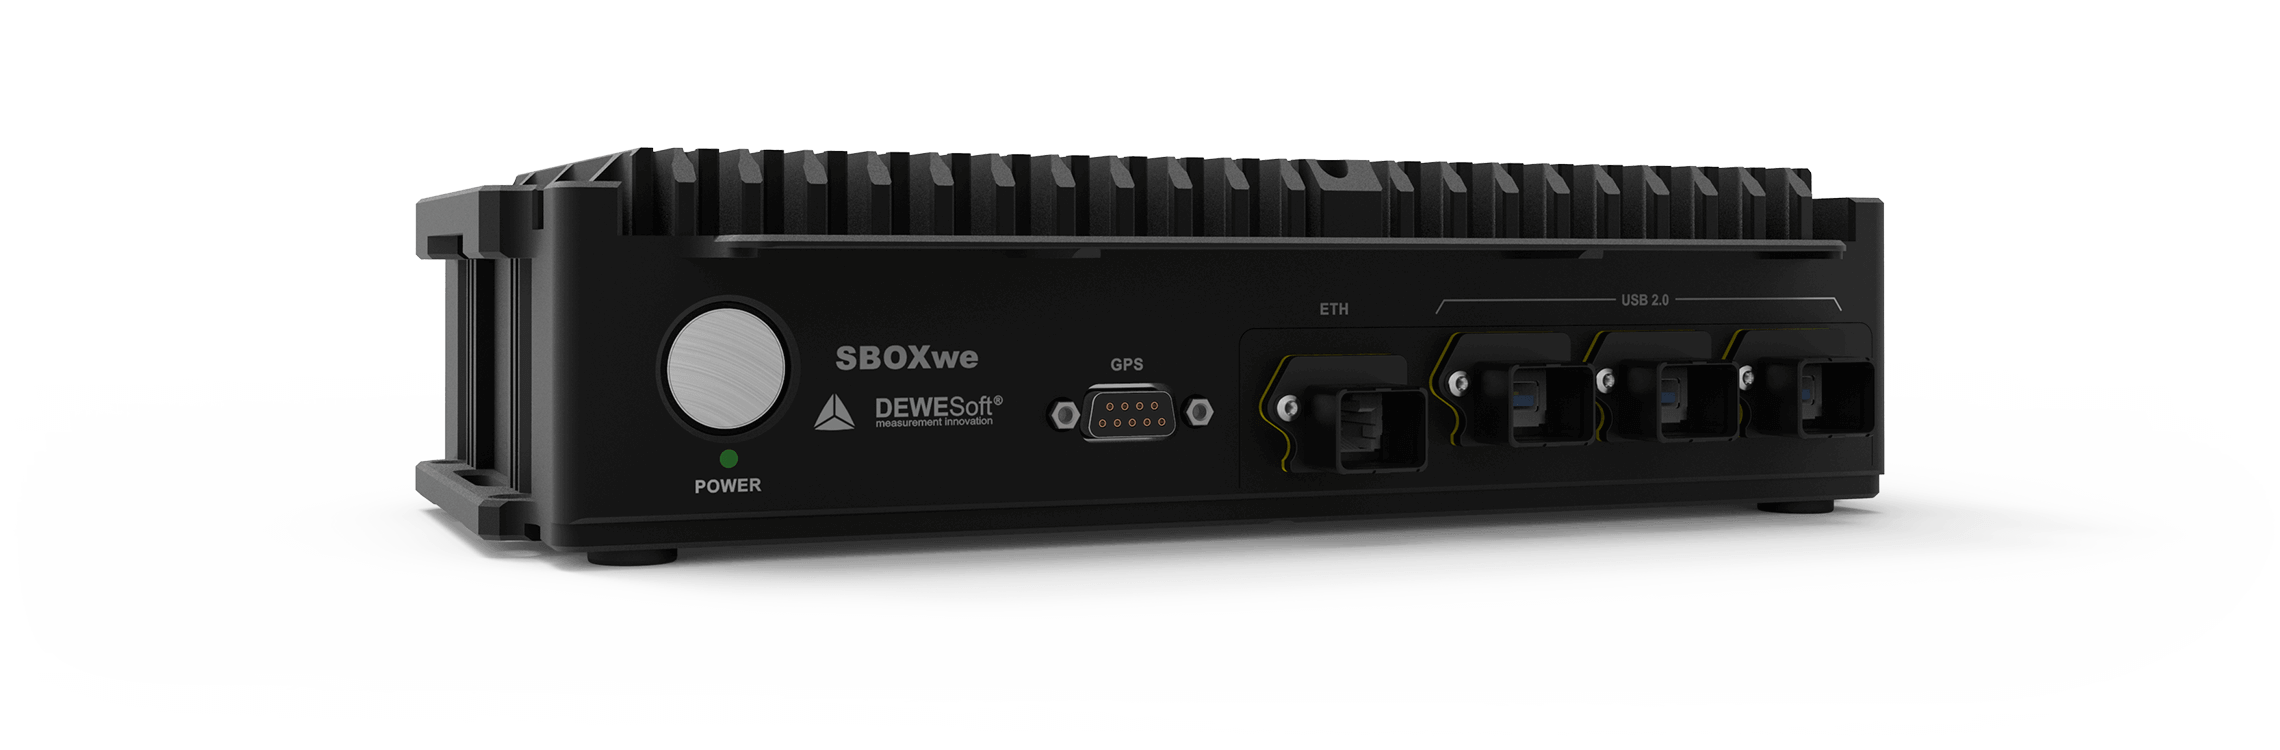 SBOX Waterproof - Rugged Data Logger and Computer | Dewesoft